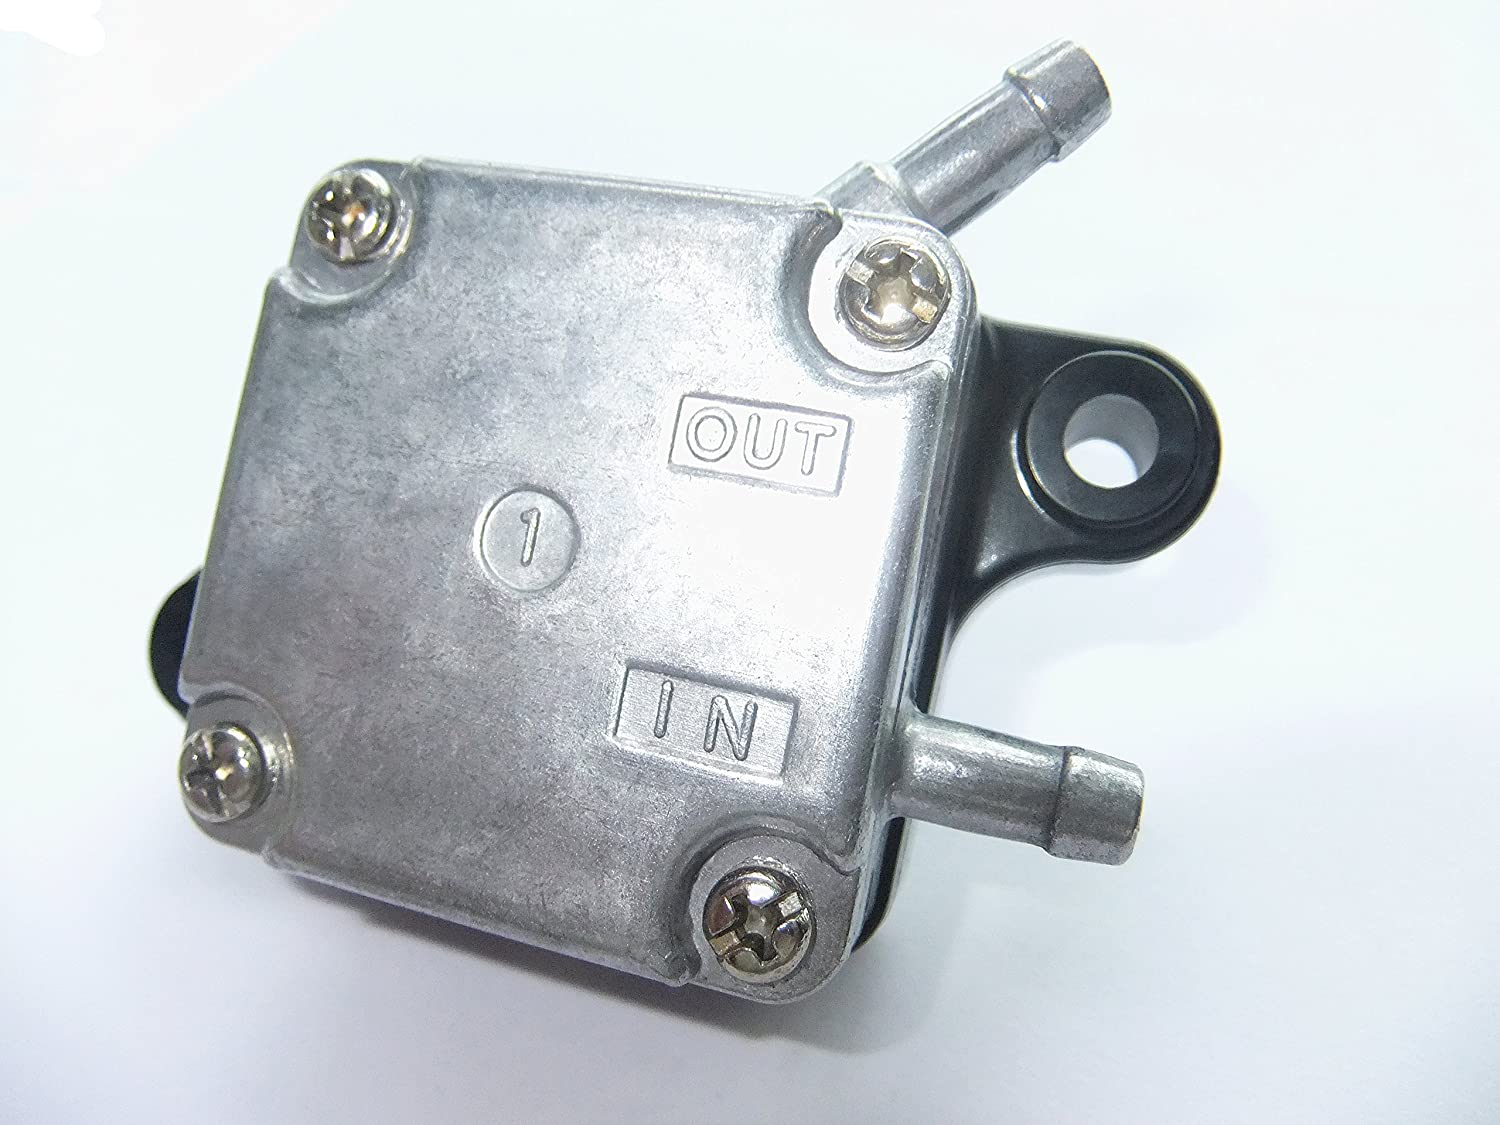 68T-24410-00-00 68T-24410-01-00 Fuel Pump Assy for Yamaha 4-Stroke 6HP 8HP 9.9HP F6 F8 F9.9 T8 T9.9 Outboard Motor